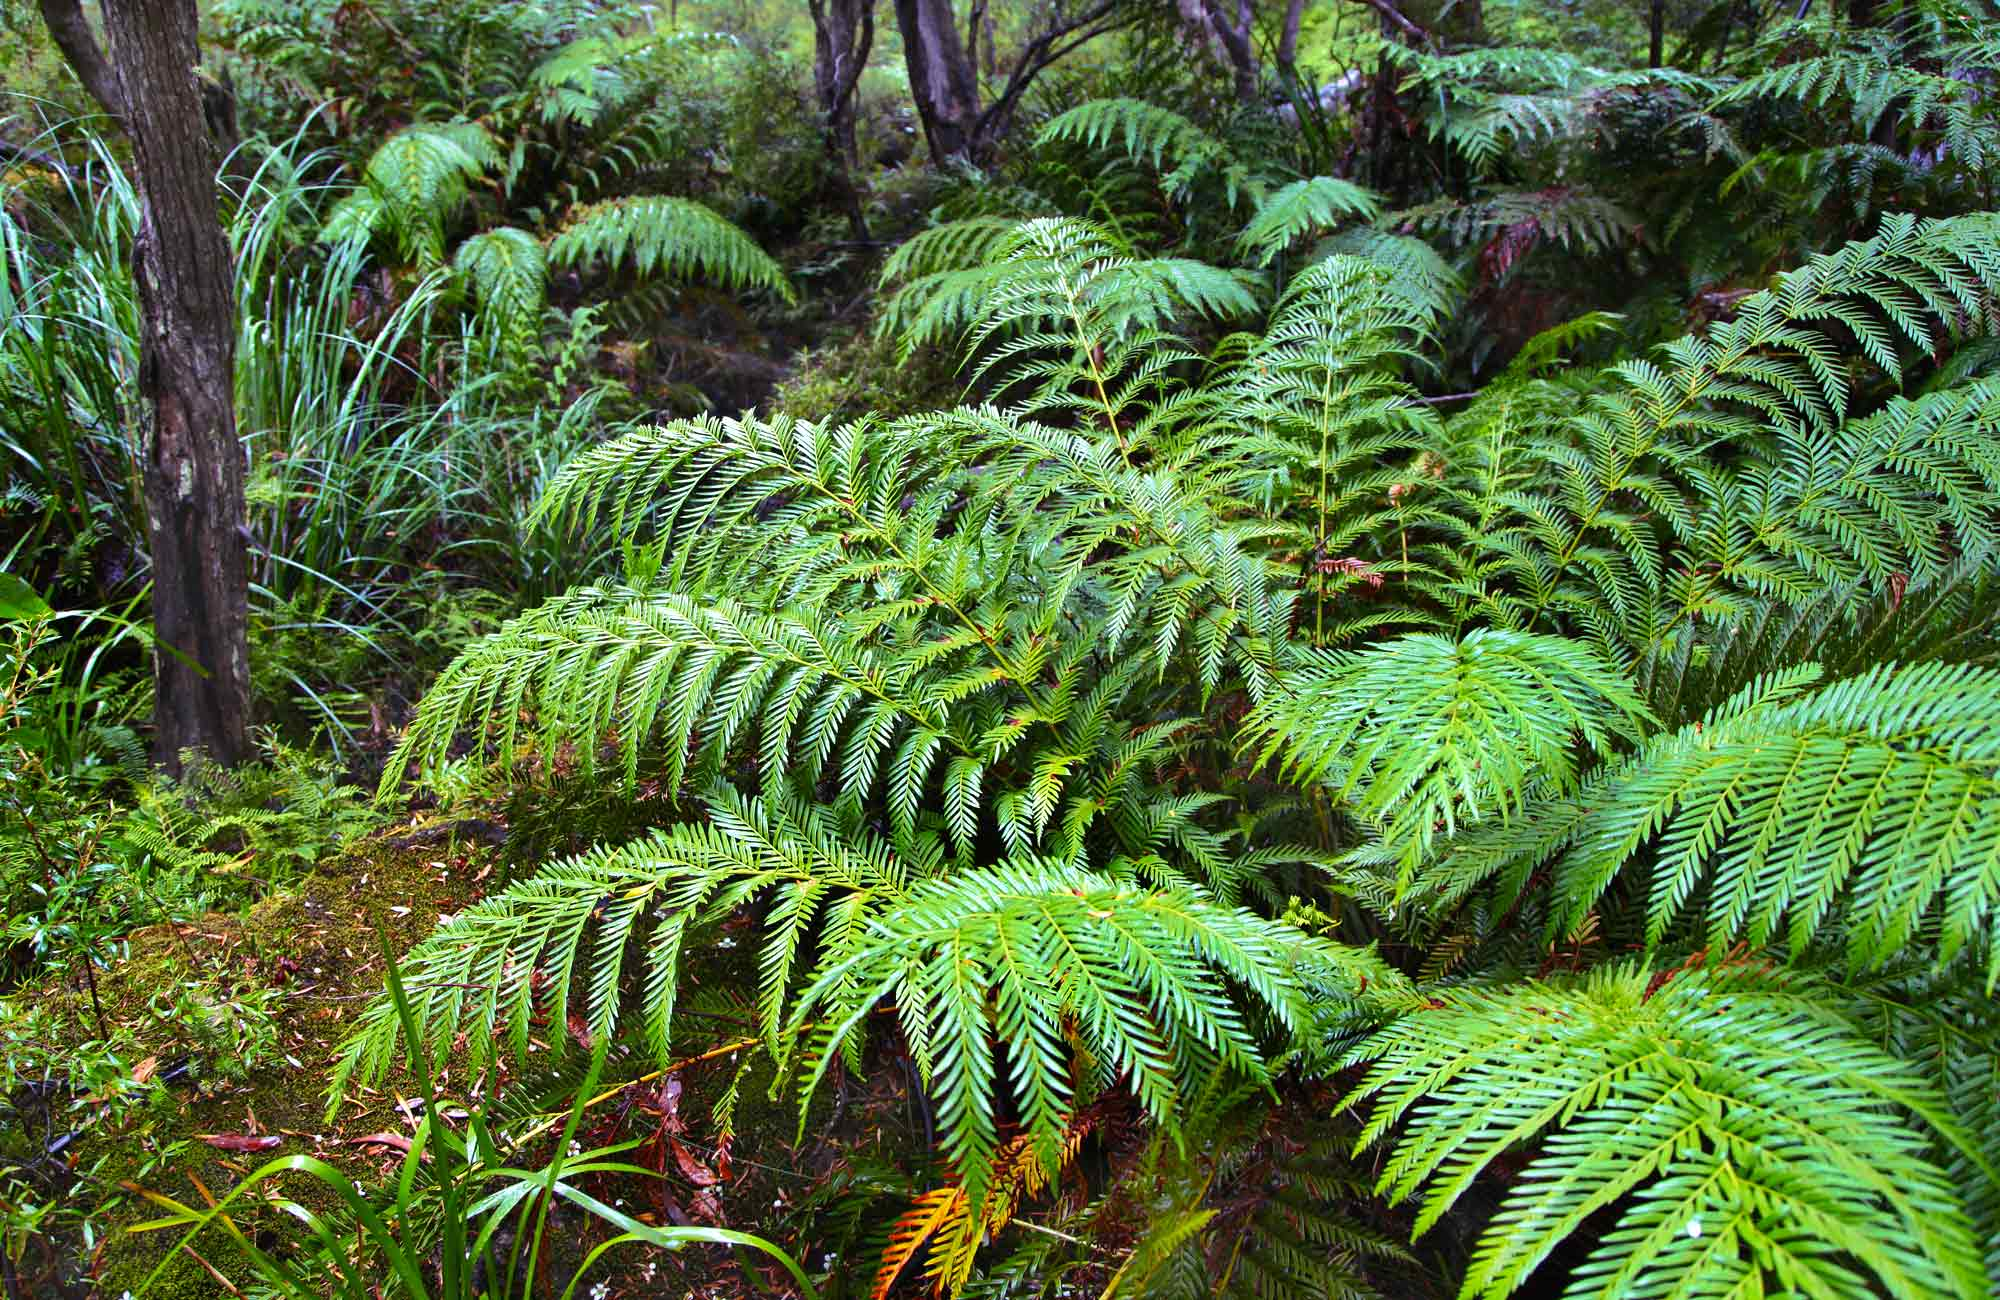 Tree ferns near Nellies Glen picnic area, Budderoo National Park. Photo credit: Andrew Richards © Andrew Richards